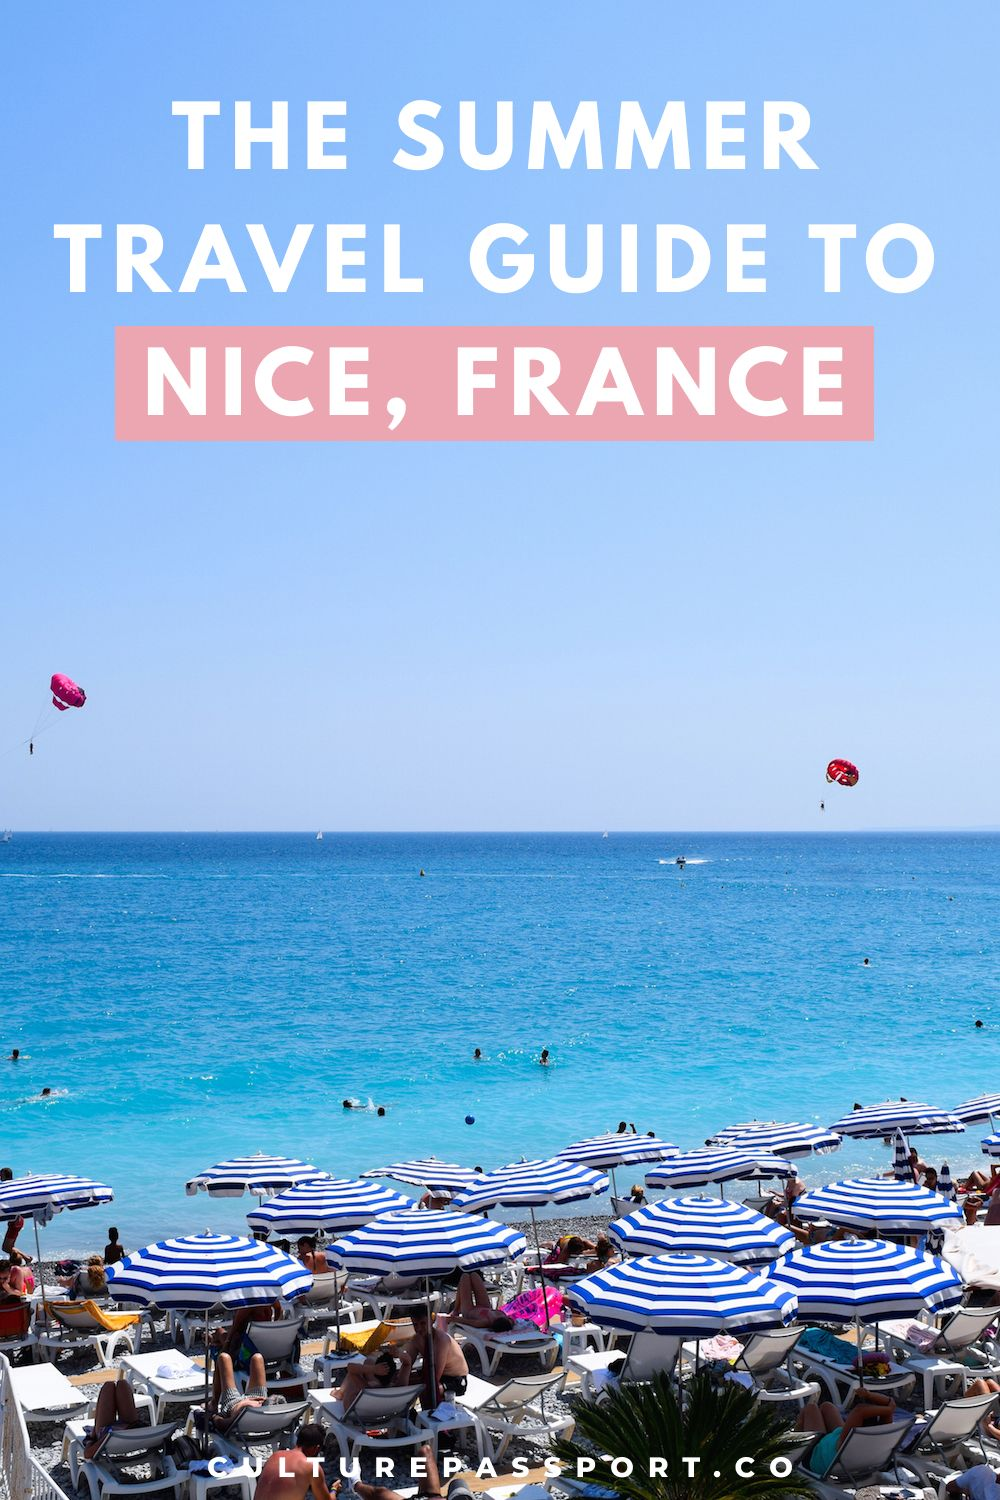 The Summer Travel Guide To Nice, France